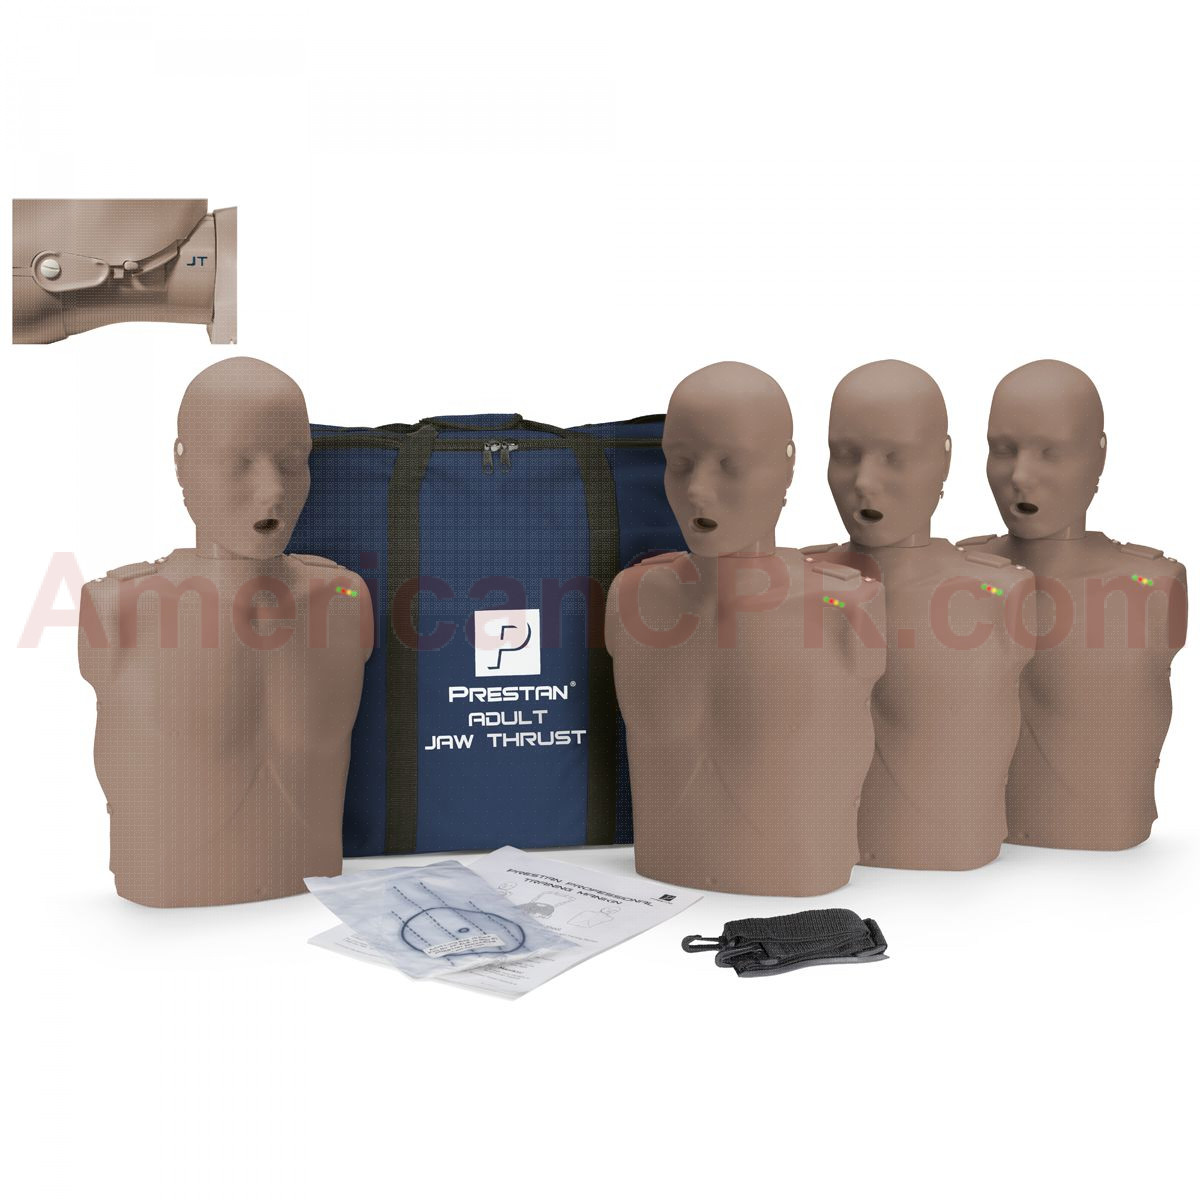 Prestan Adult Jaw Thrust CPR Manikin w/ CPR Monitor - 4 Pack - Dark Skin - Prestan Products